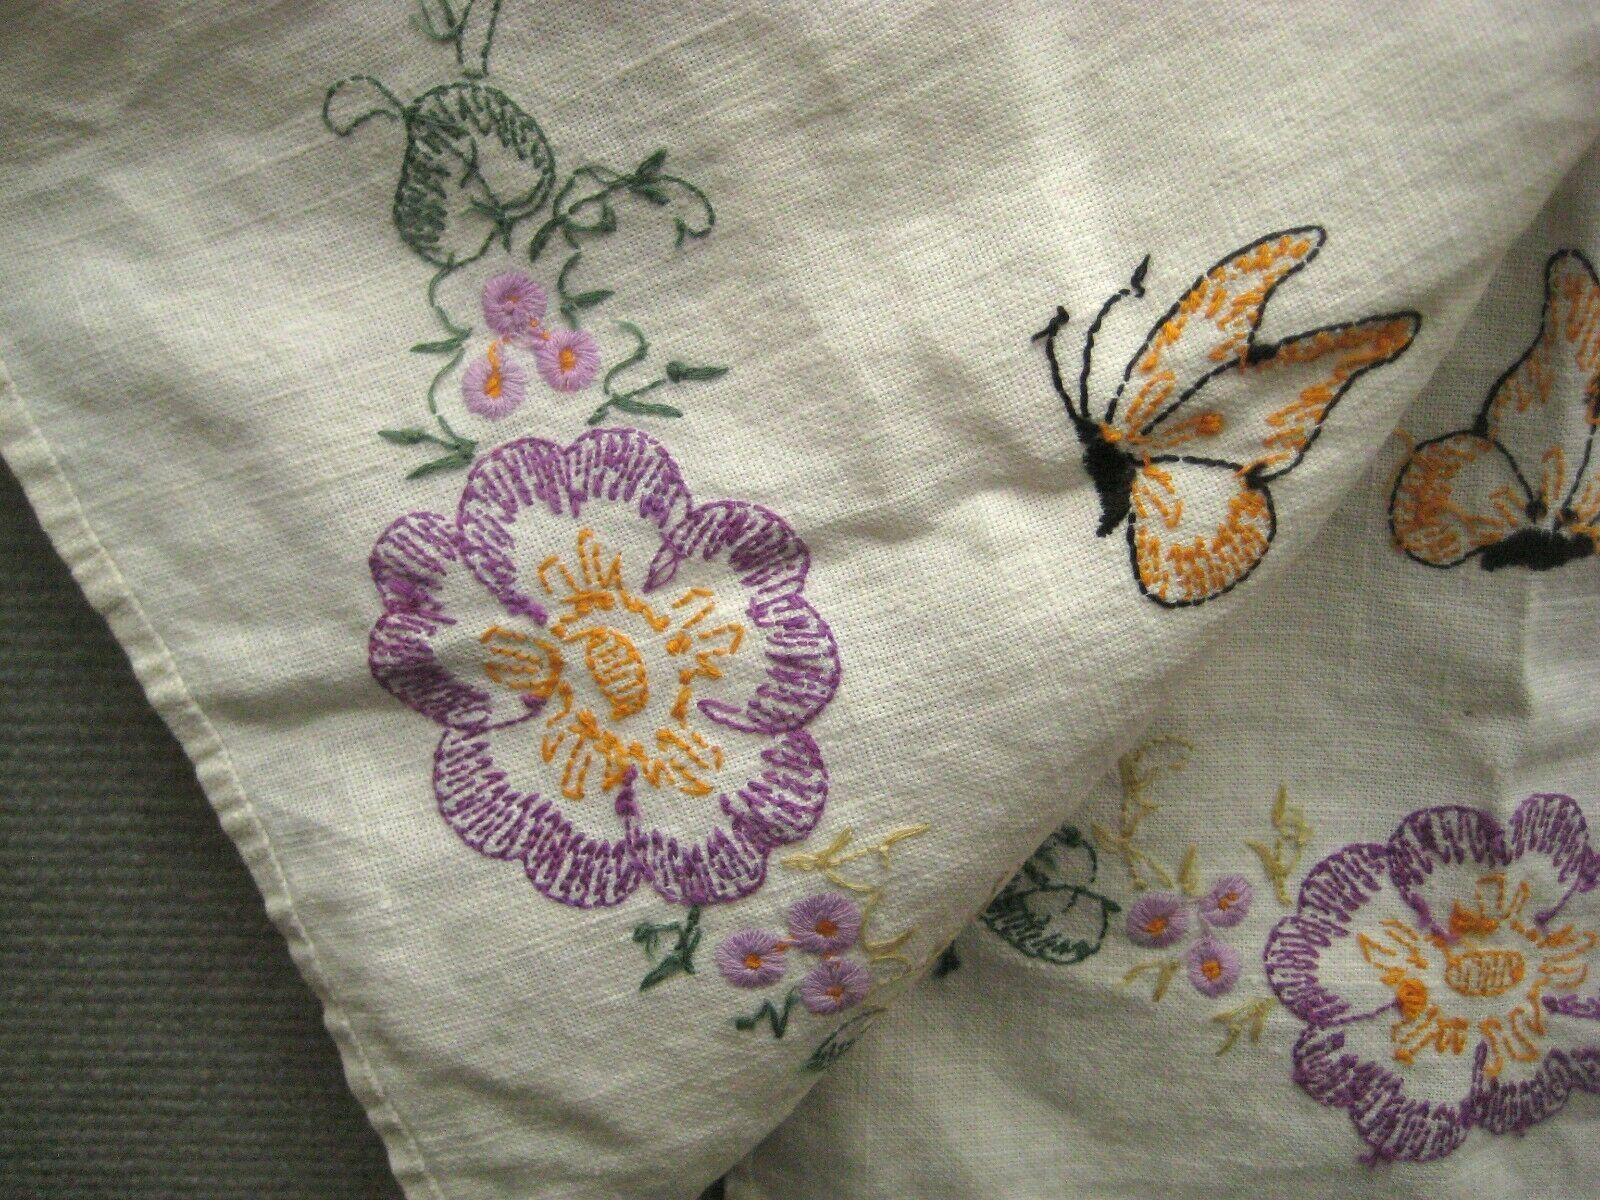 Tea Towel 38 In Kitchen Bathroom Crewel Embroidery Hand Stitch Floral Butterfly image 4